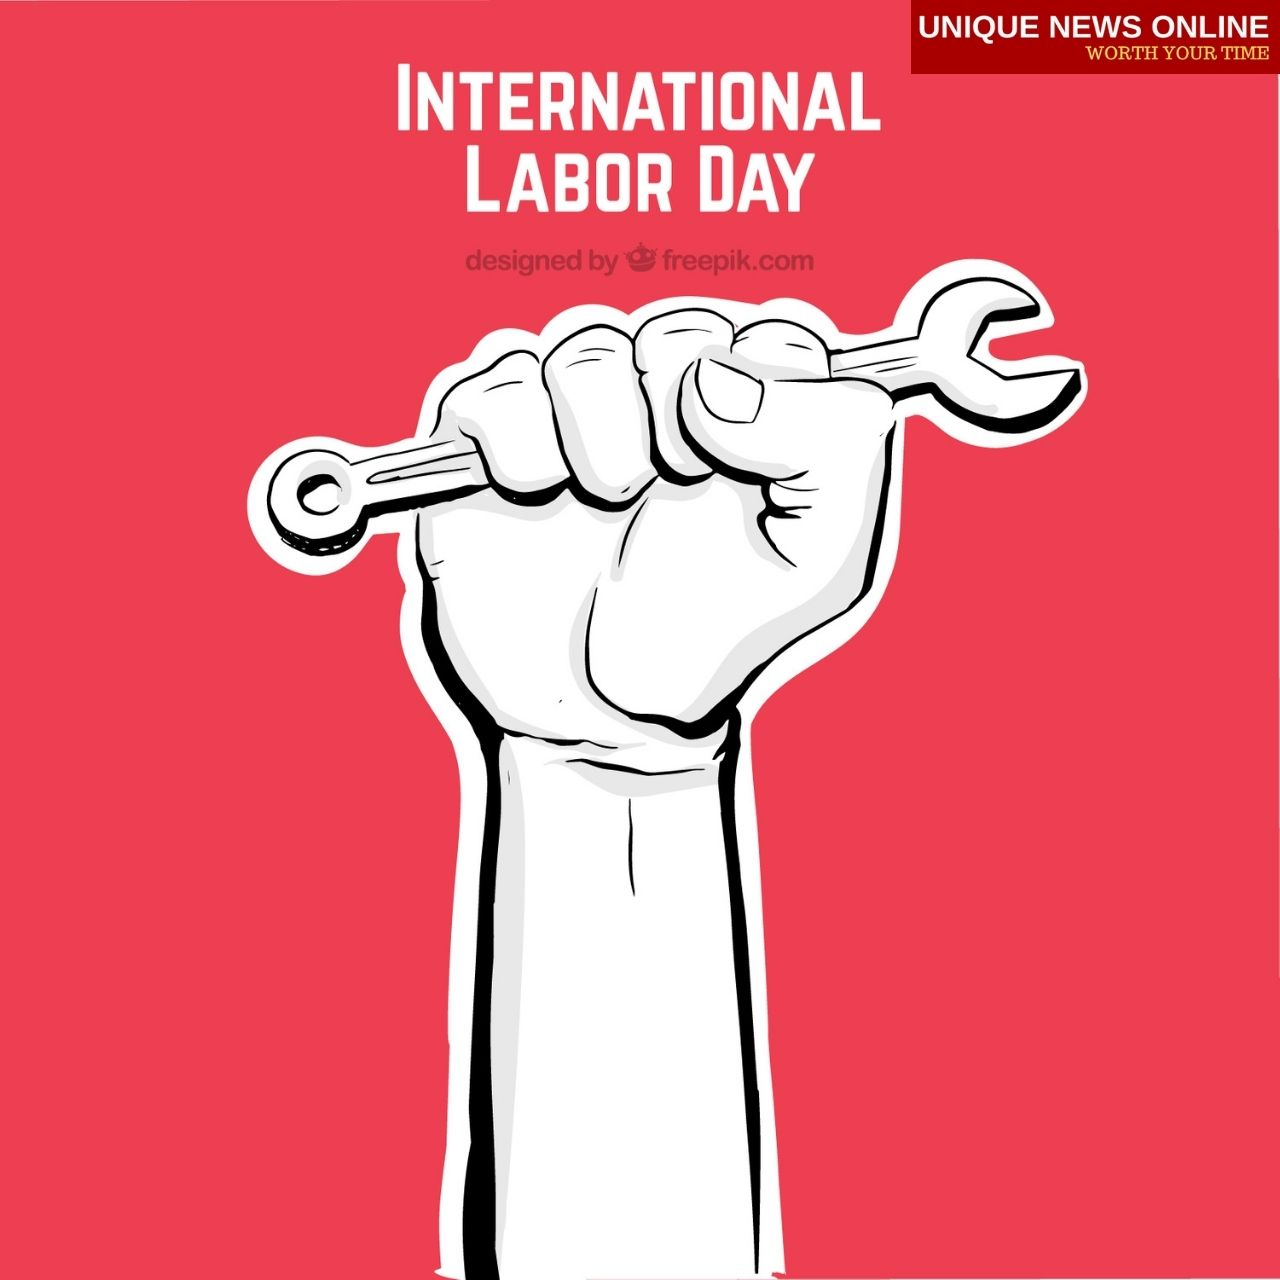 International Workers' Day 2021 Theme, Quotes, Wishes, and Images